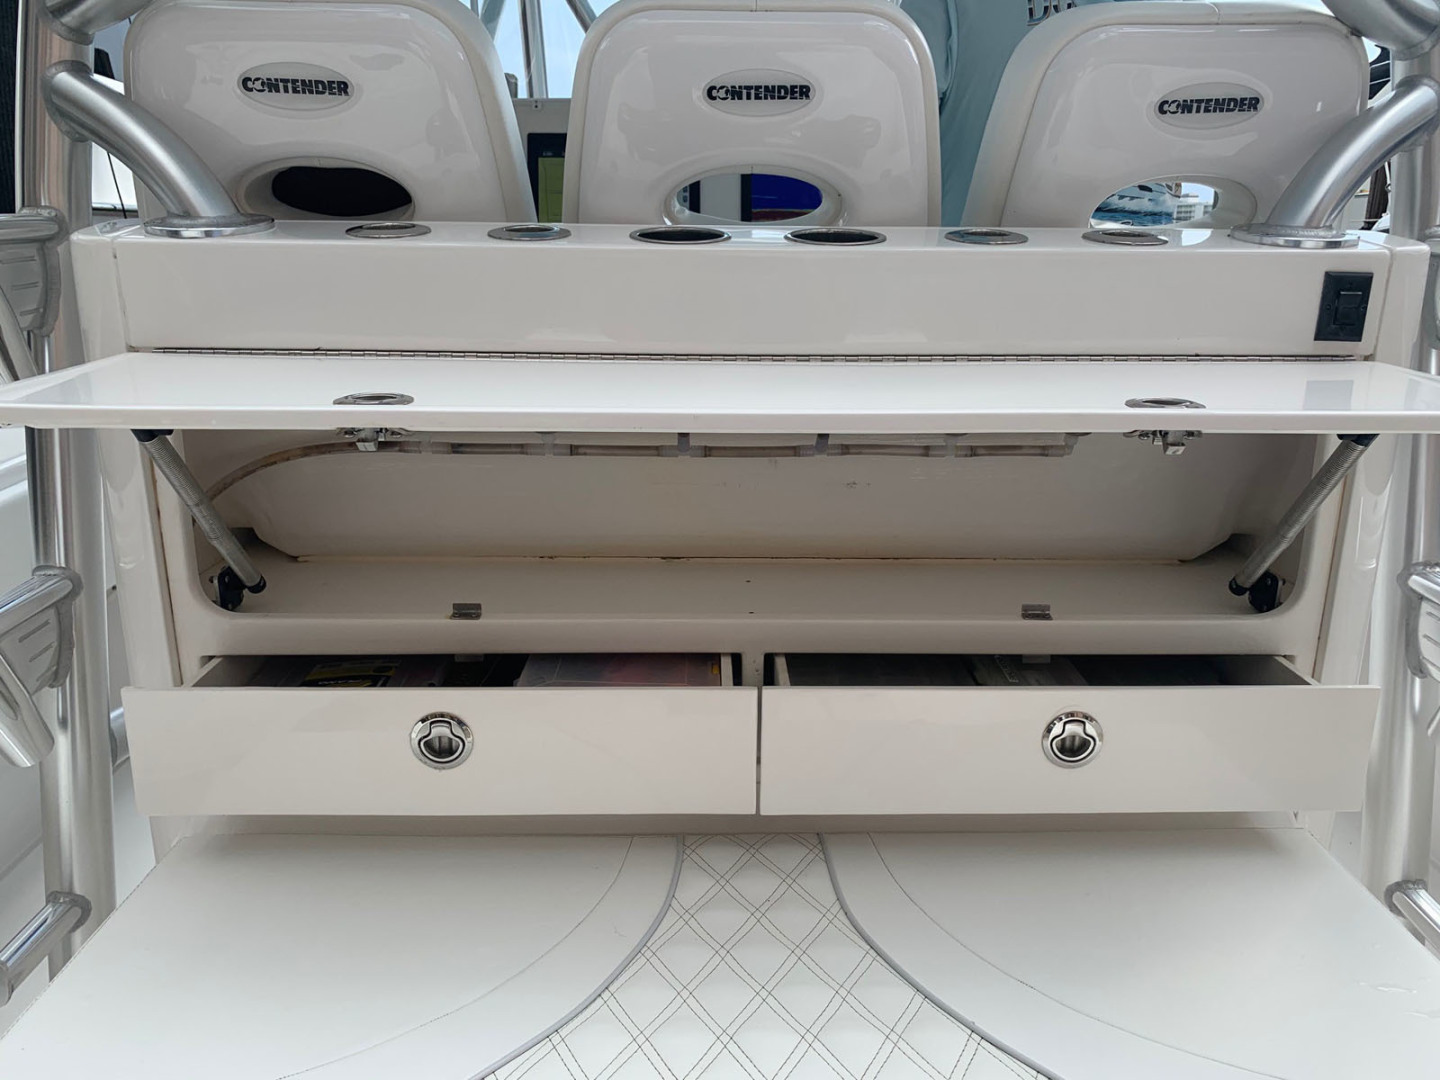 Contender-39 Step Hull w/SeaKeeper 2019-T/T Double Barrel Name Reserved Boca Raton-Florida-United States-Storage Locker with Tackle Drawers-1558950   Thumbnail